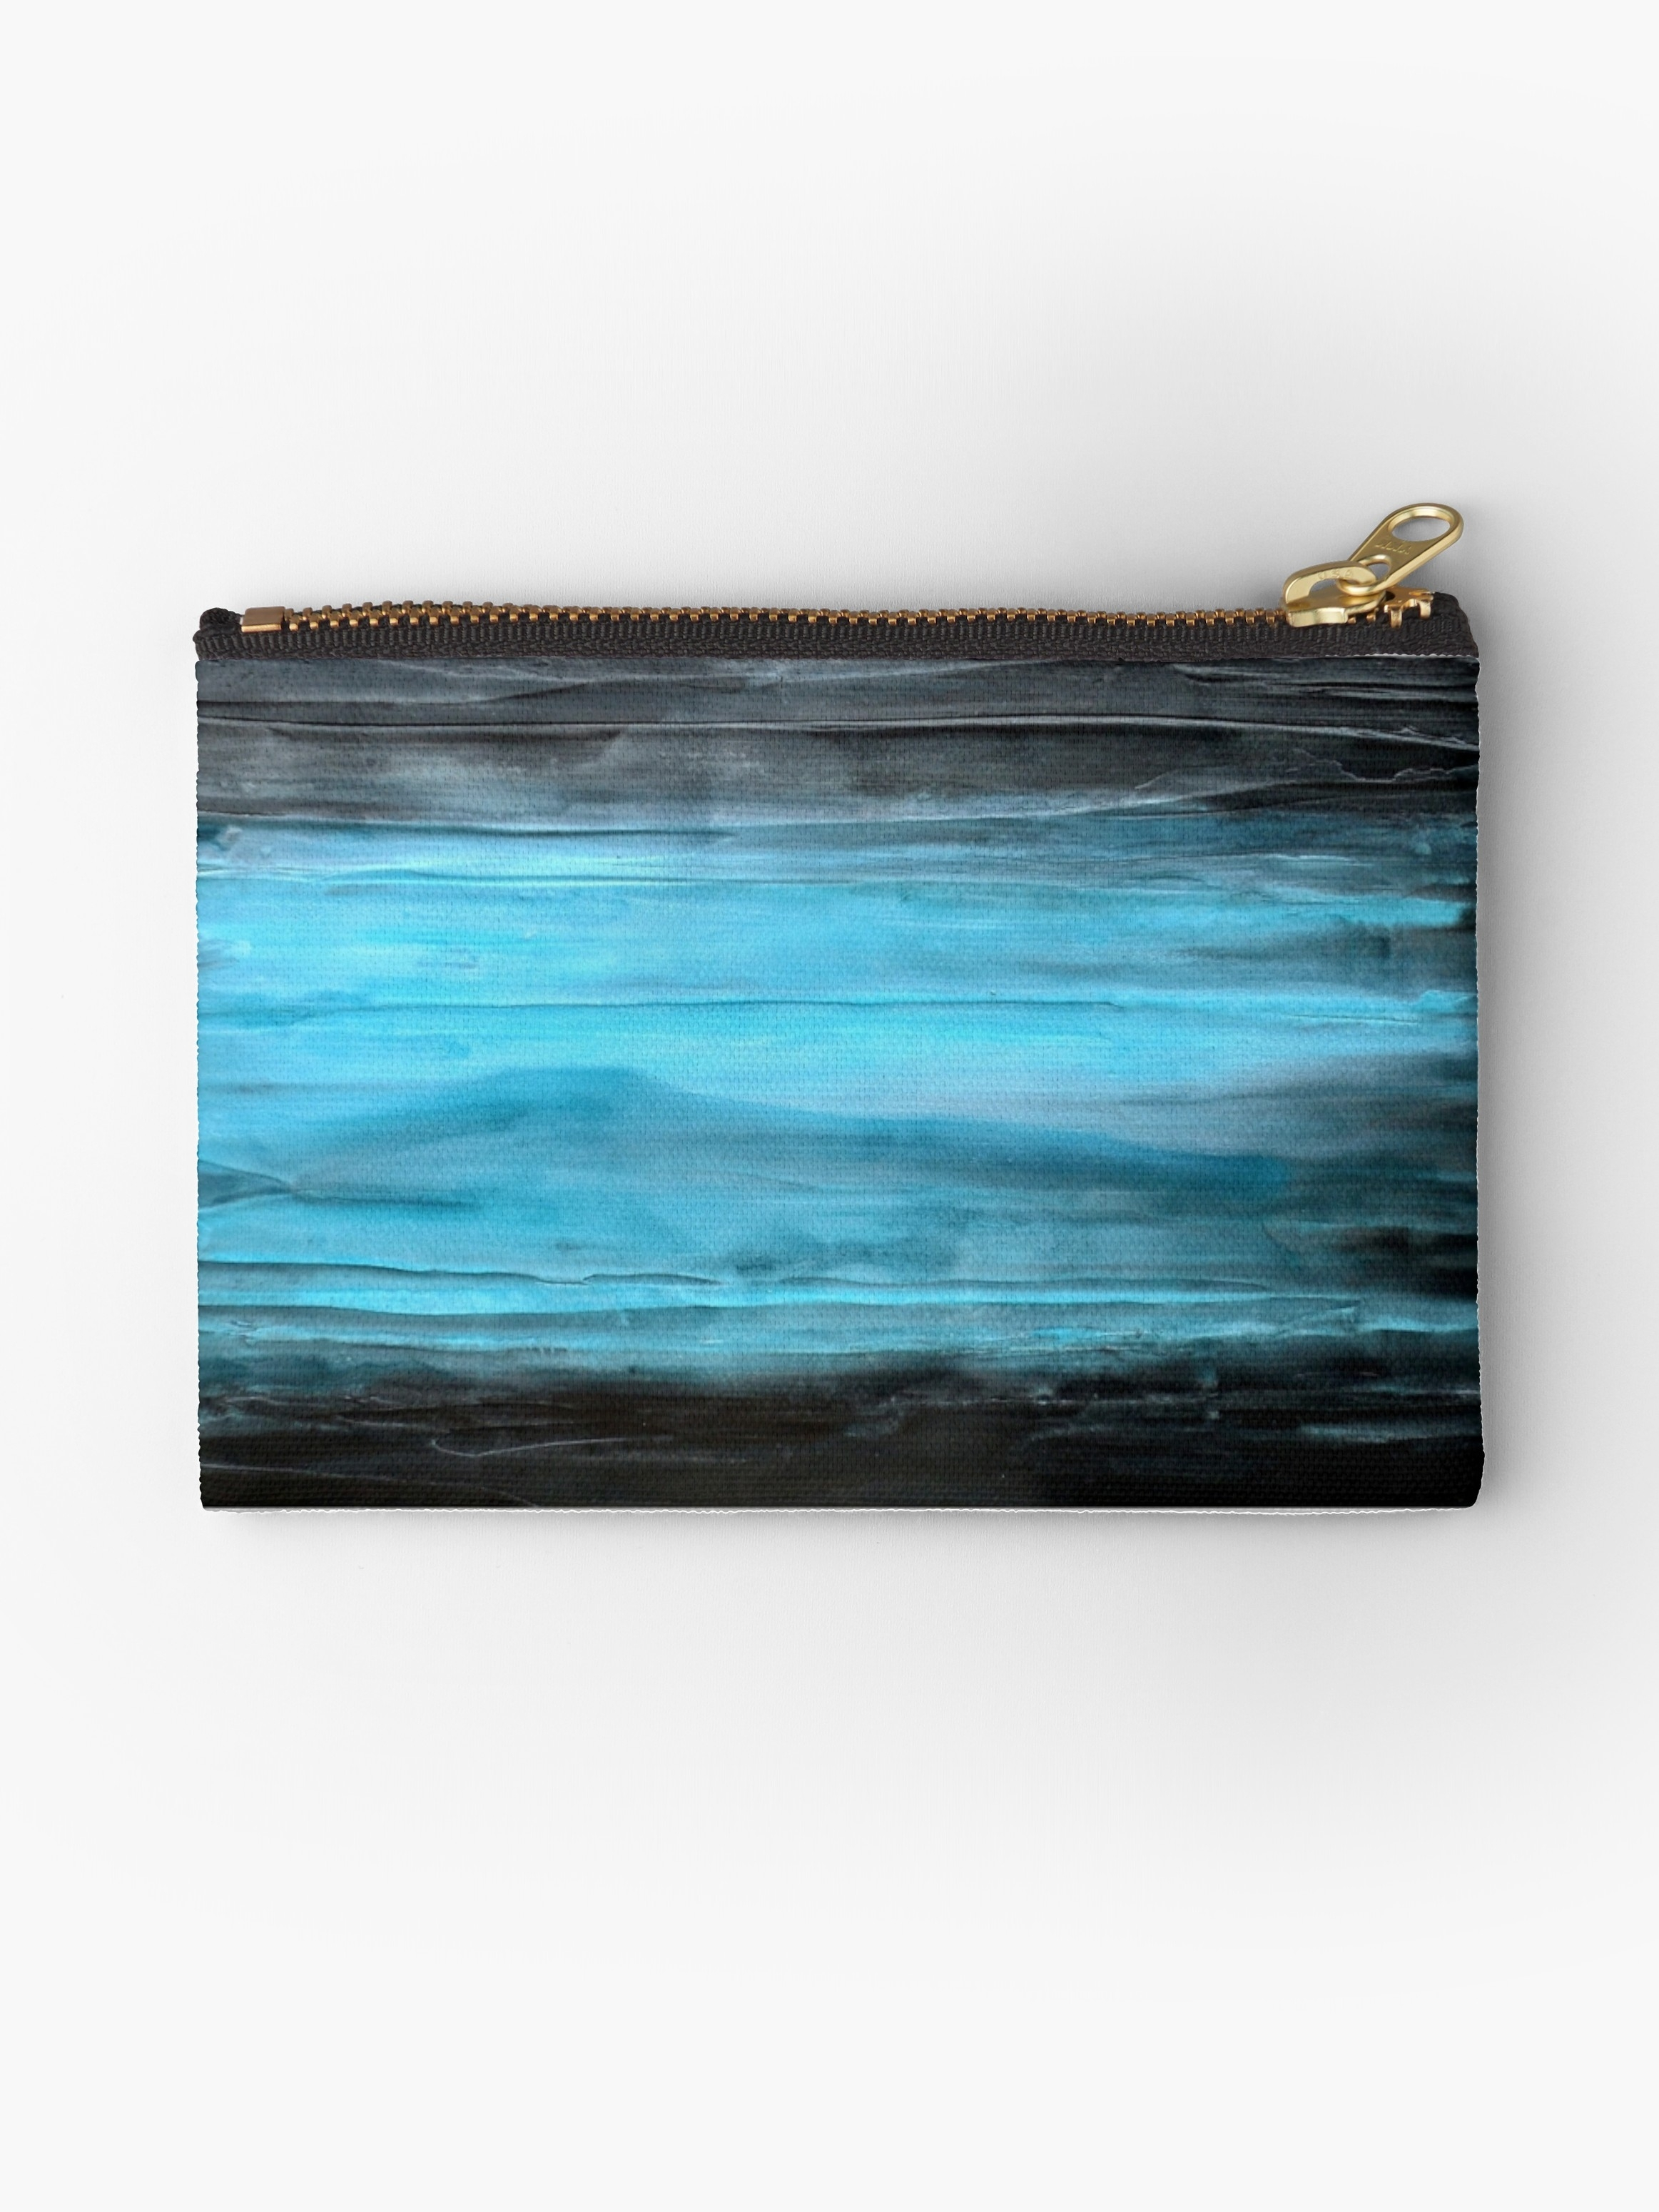 Abstract Wall Art Contemporary Art, Painting Original Abstract Intended For Most Up To Date Long Abstract Wall Art (View 17 of 20)